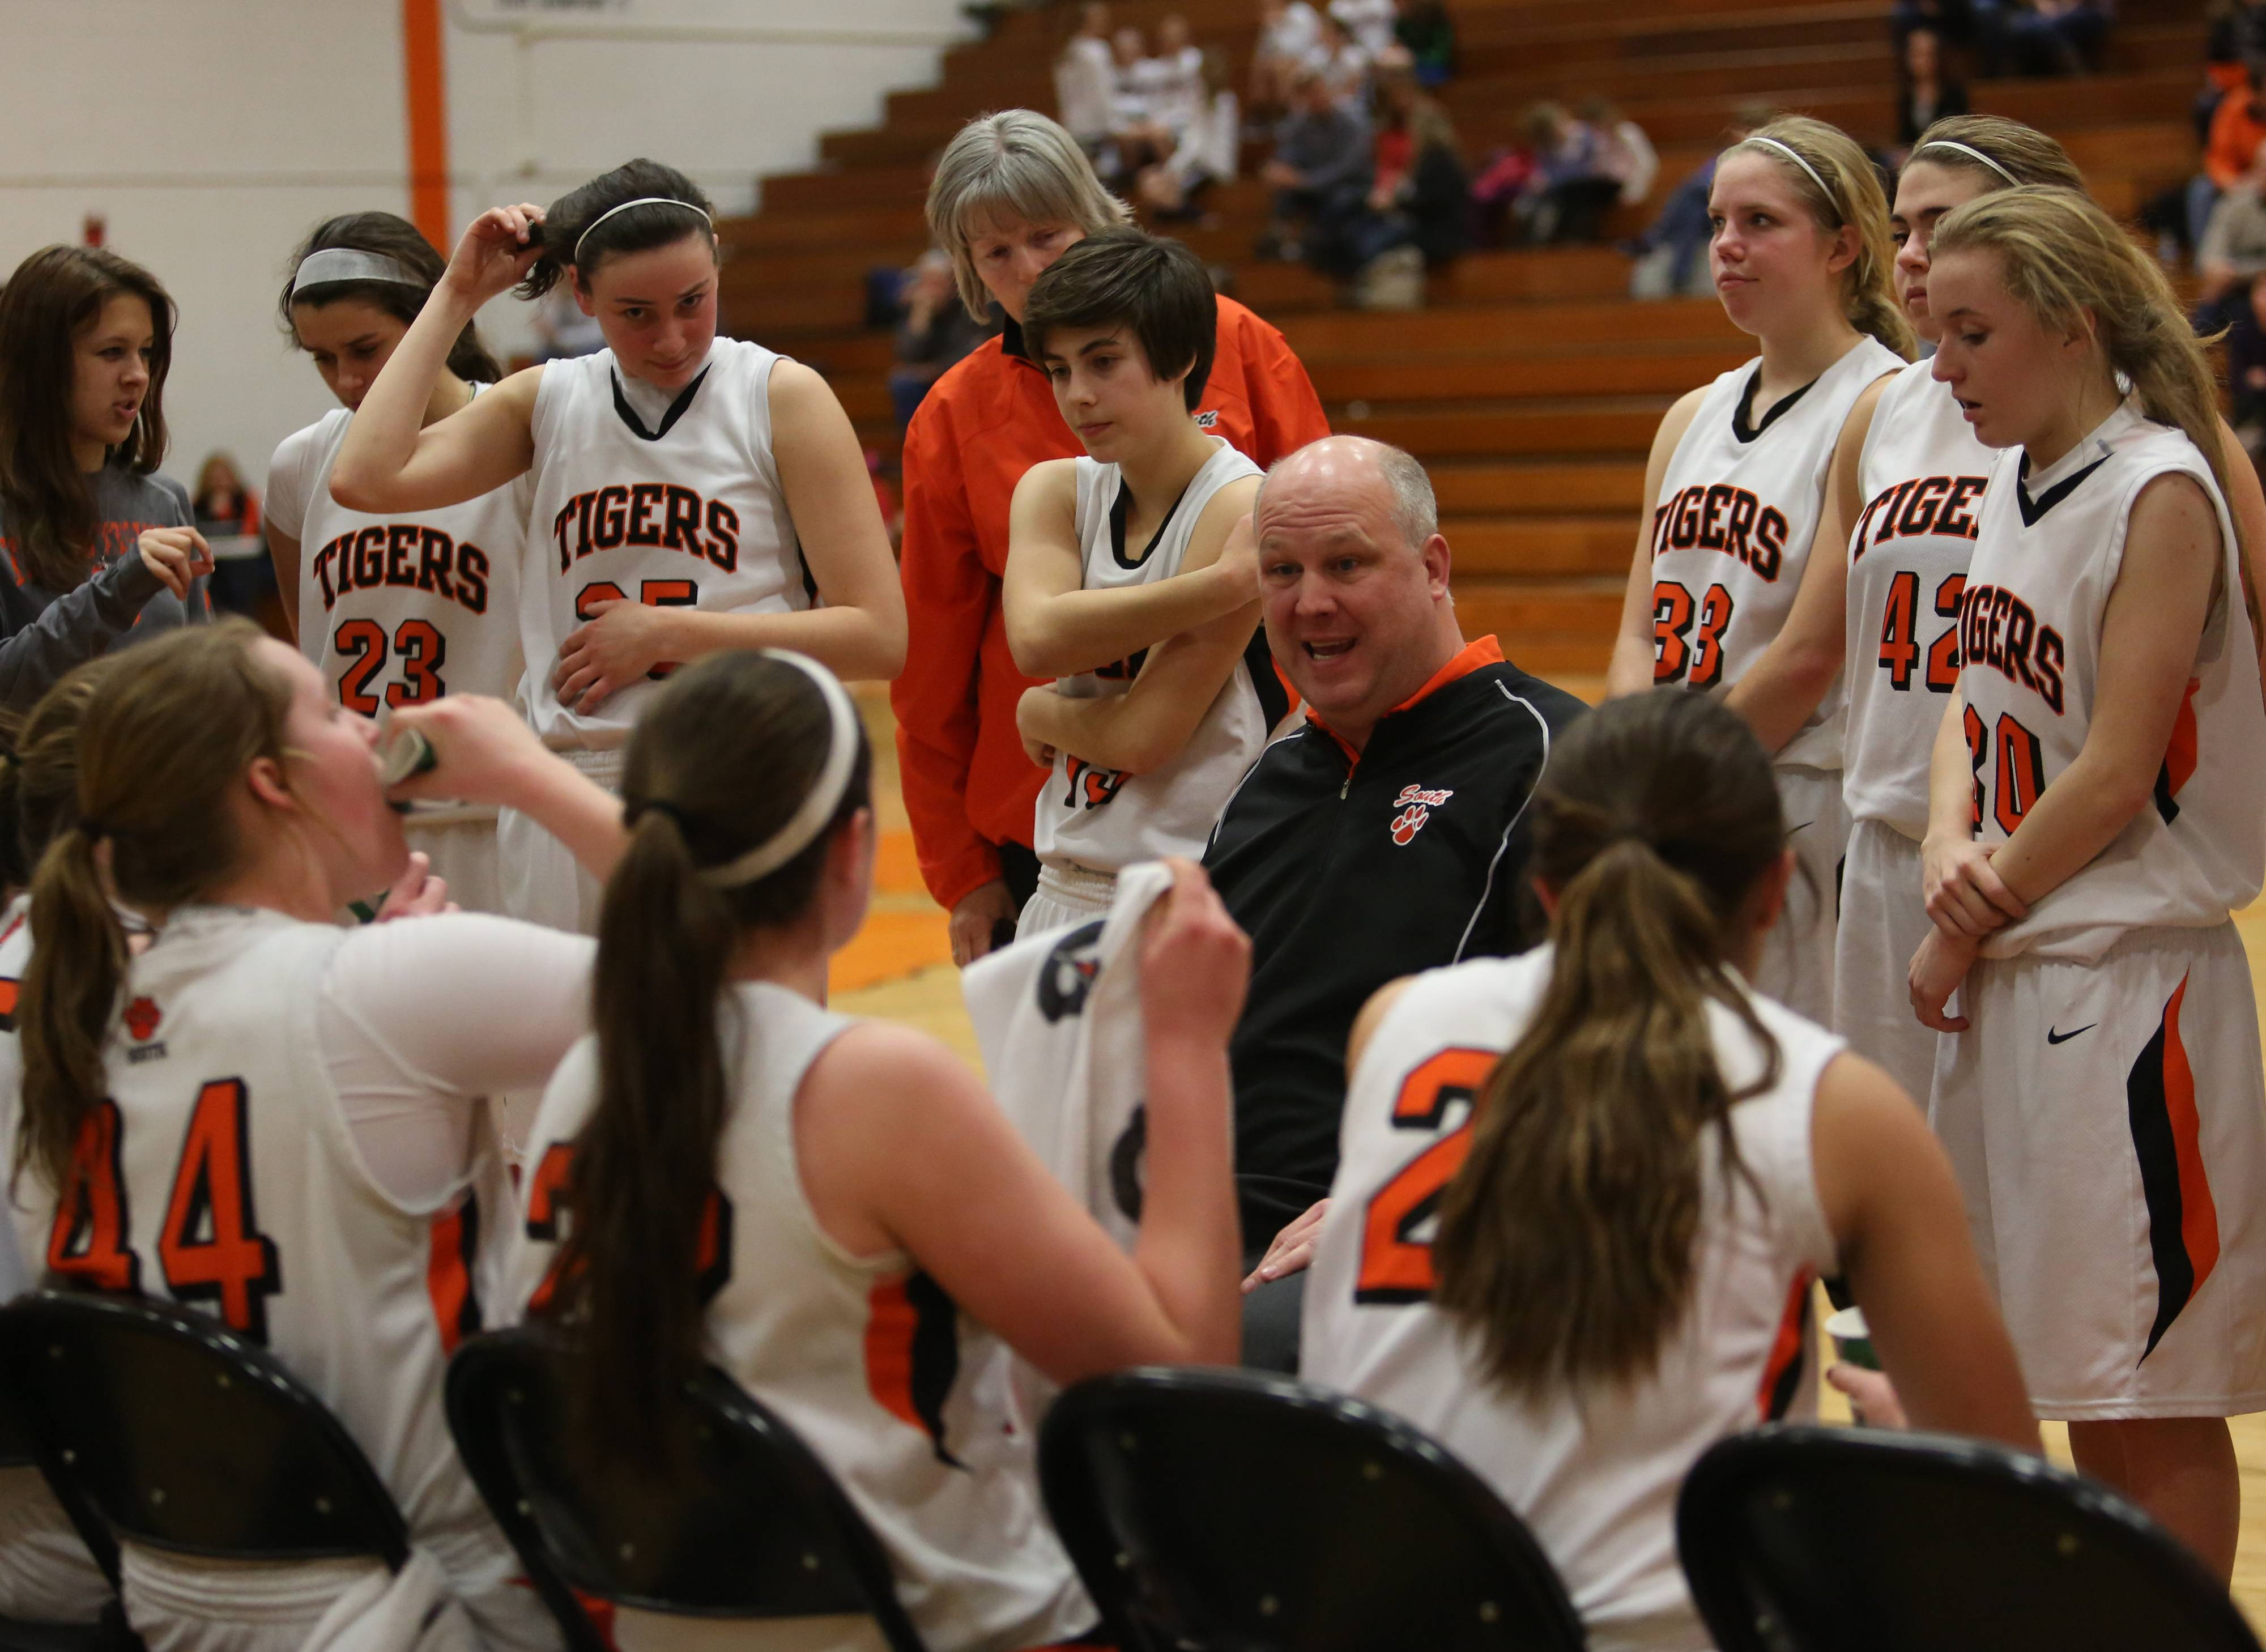 Images: West Aurora at Wheaton Warrenville South girls basketball